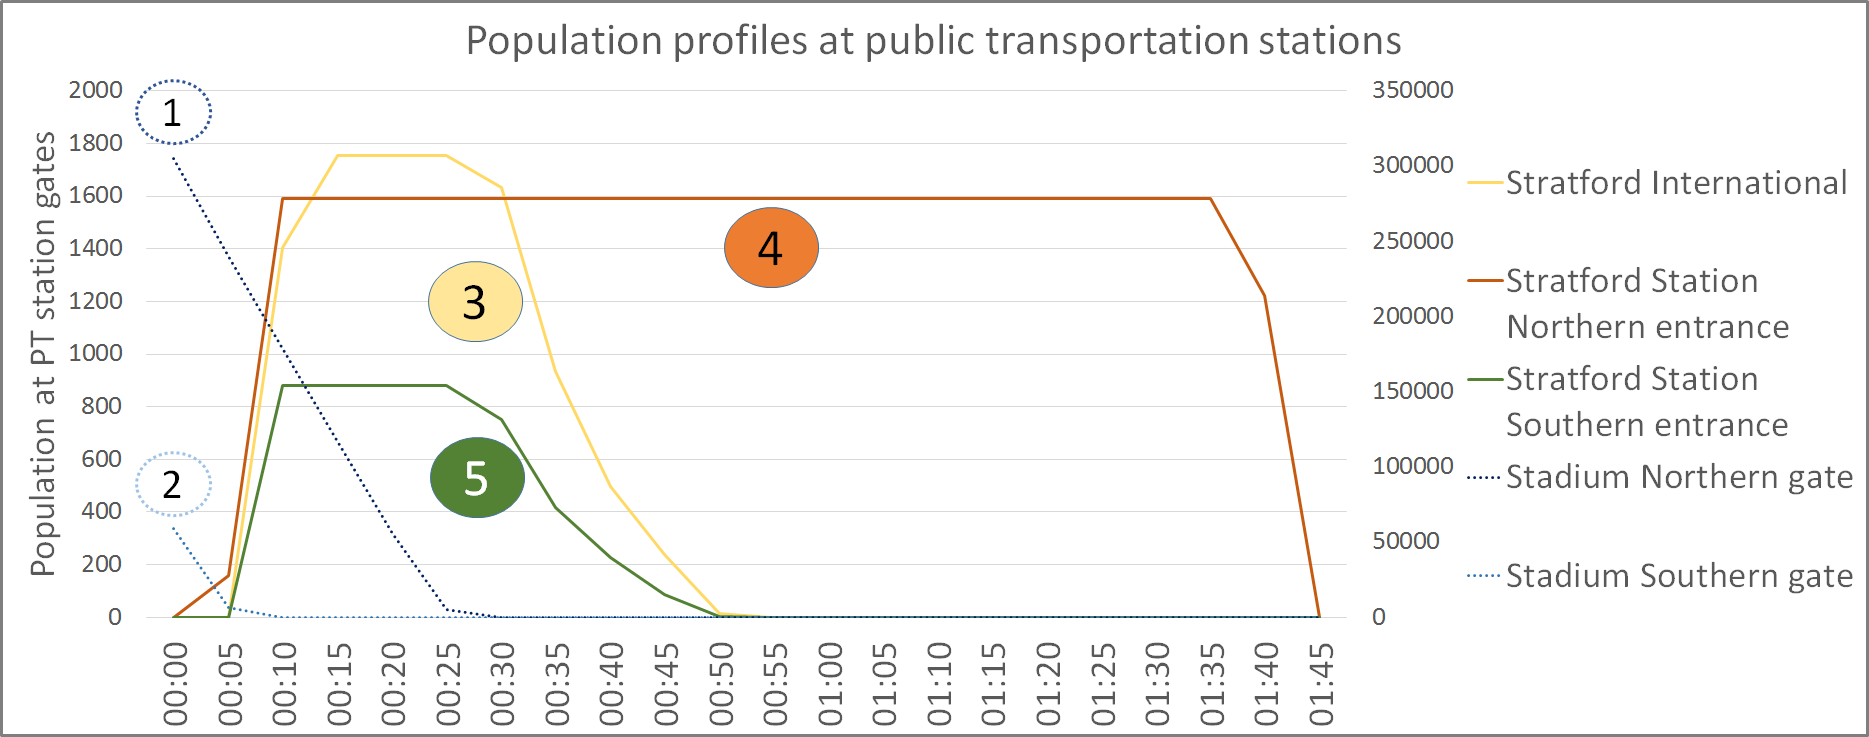 Olympic Stadium Pedestrian Modelling: Population profiles at public transportation stations